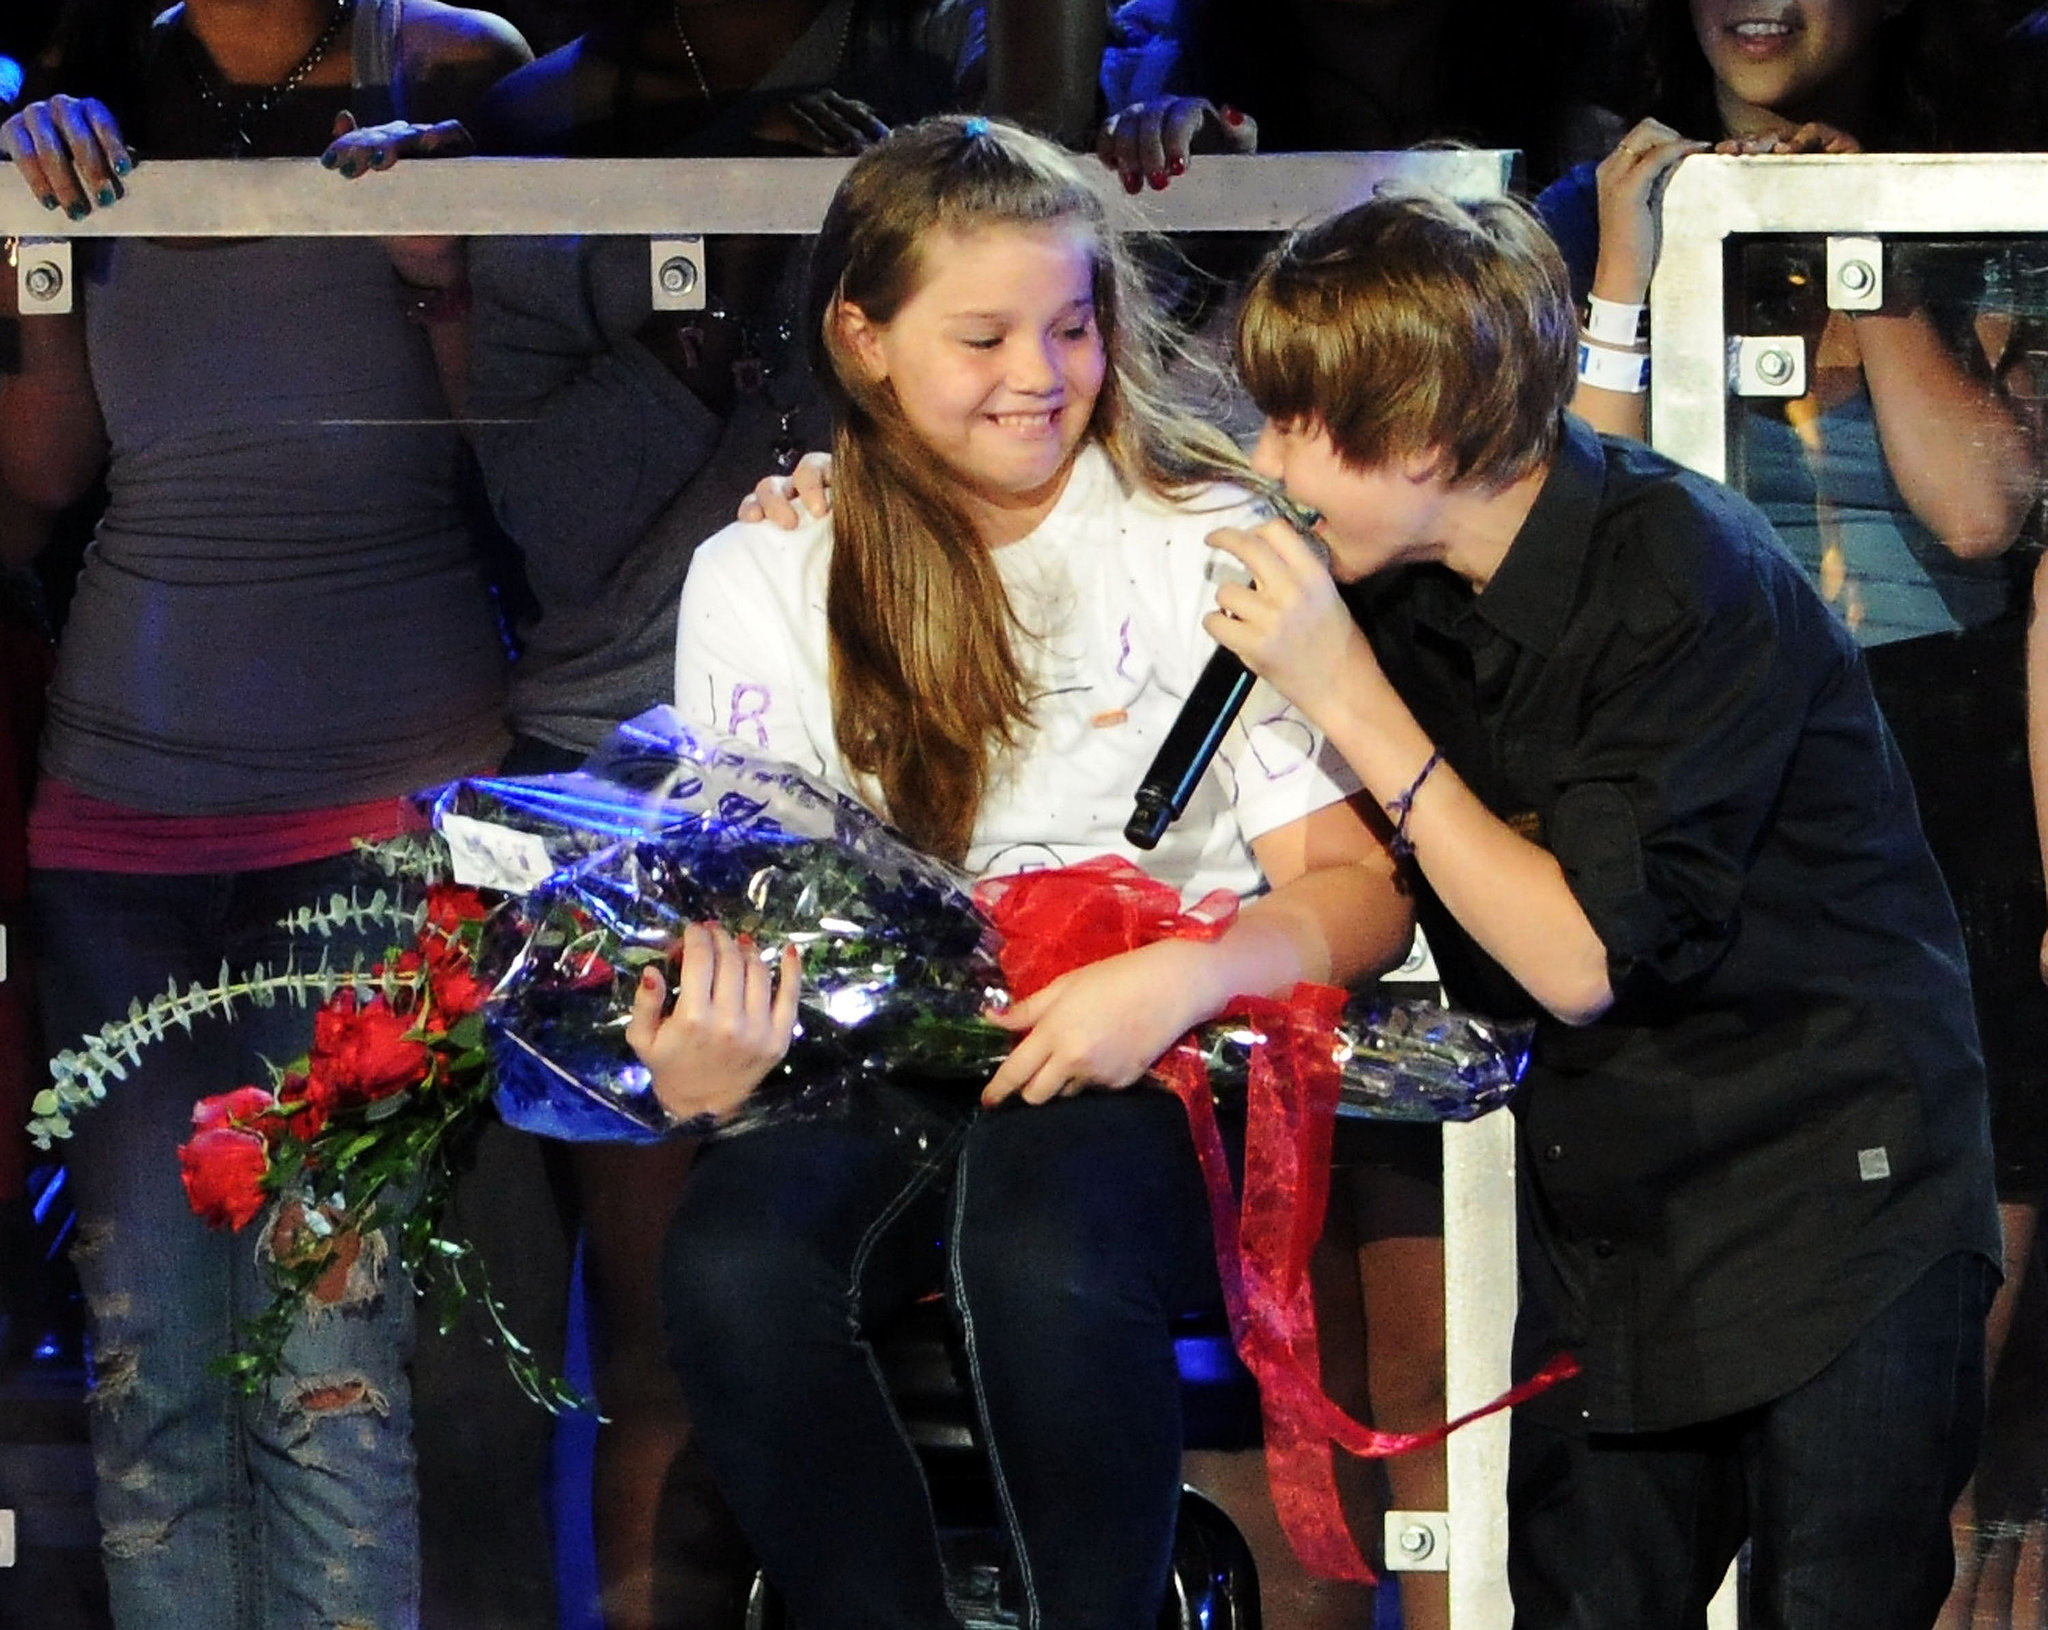 A young Justin Bieber sang to a fan on stage at the Pepsi Super Bowl Fan Jam in 2010.